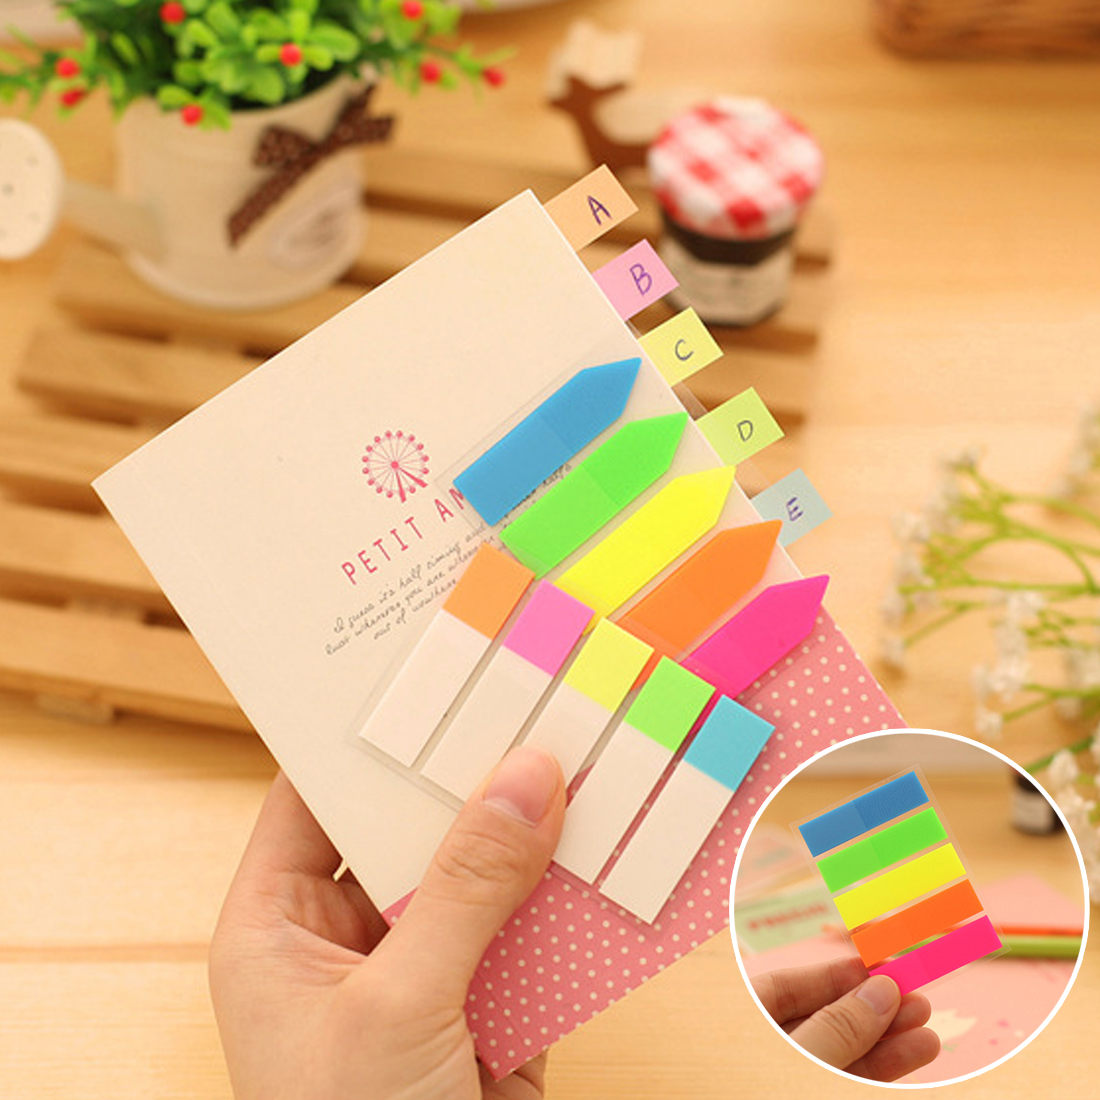 FangNymph Creative Cute Kawaii Colorful Pet Memo Pad Sticky Paper Fluorescent Post It Note For Kids School Supplies